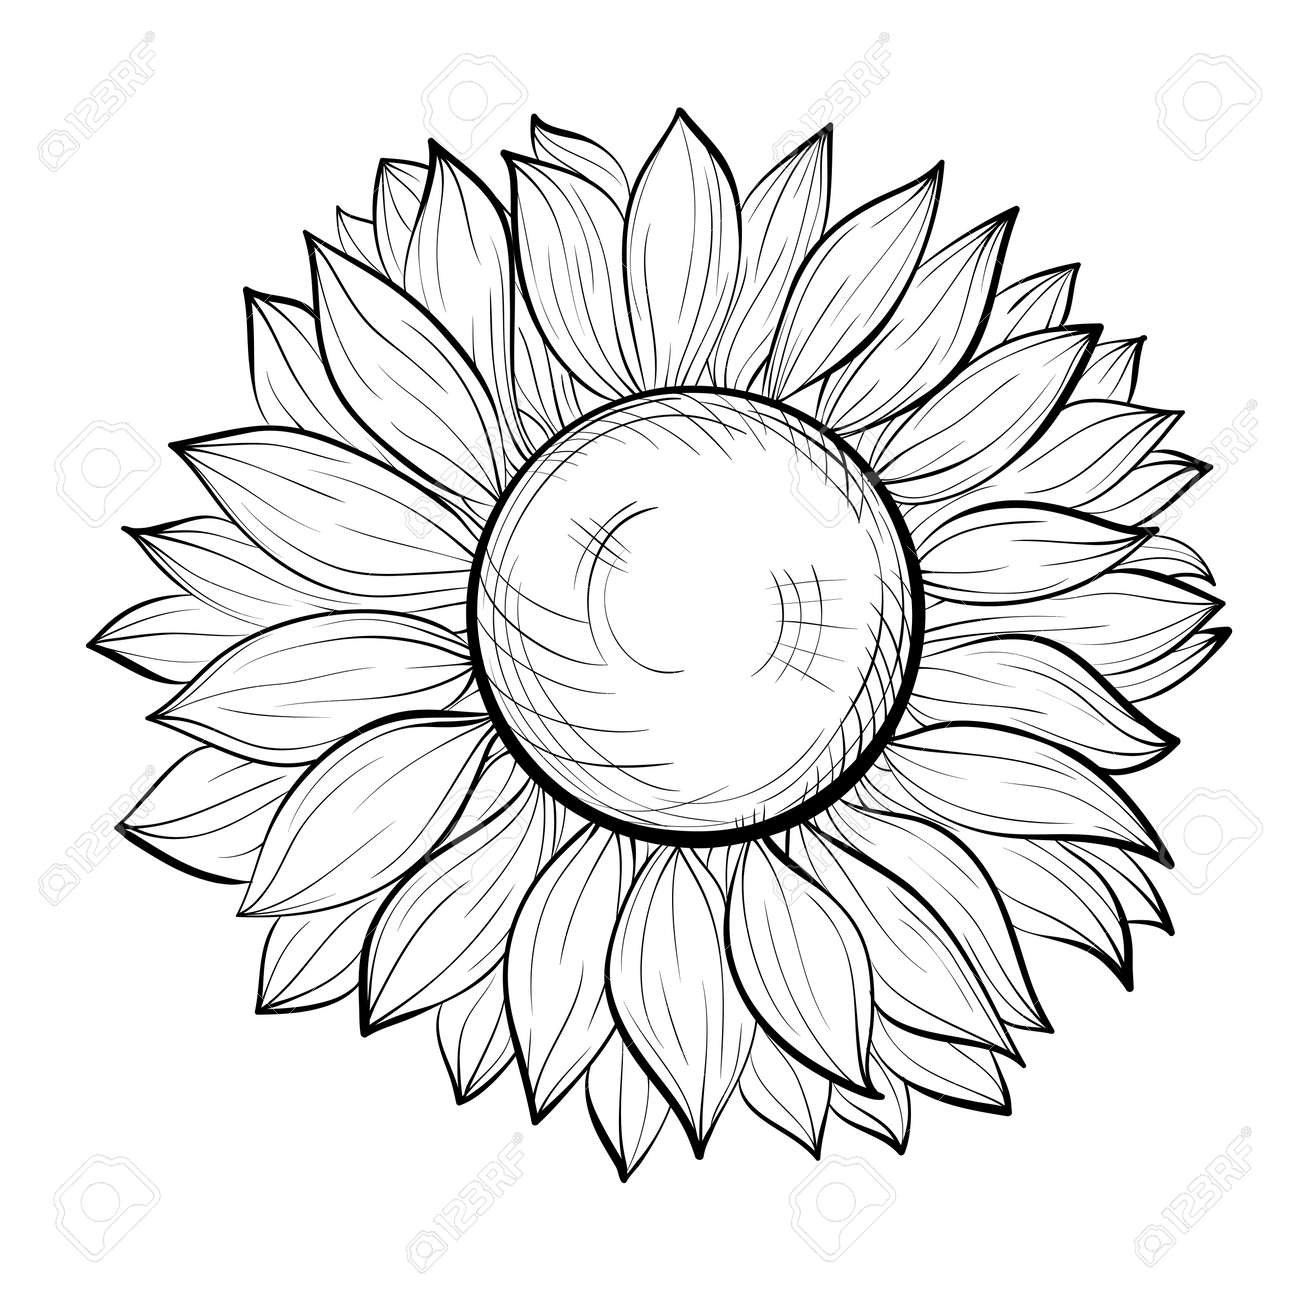 Beautiful Black And White Sunflower Isolated On Background Hand Drawn Contour Lines